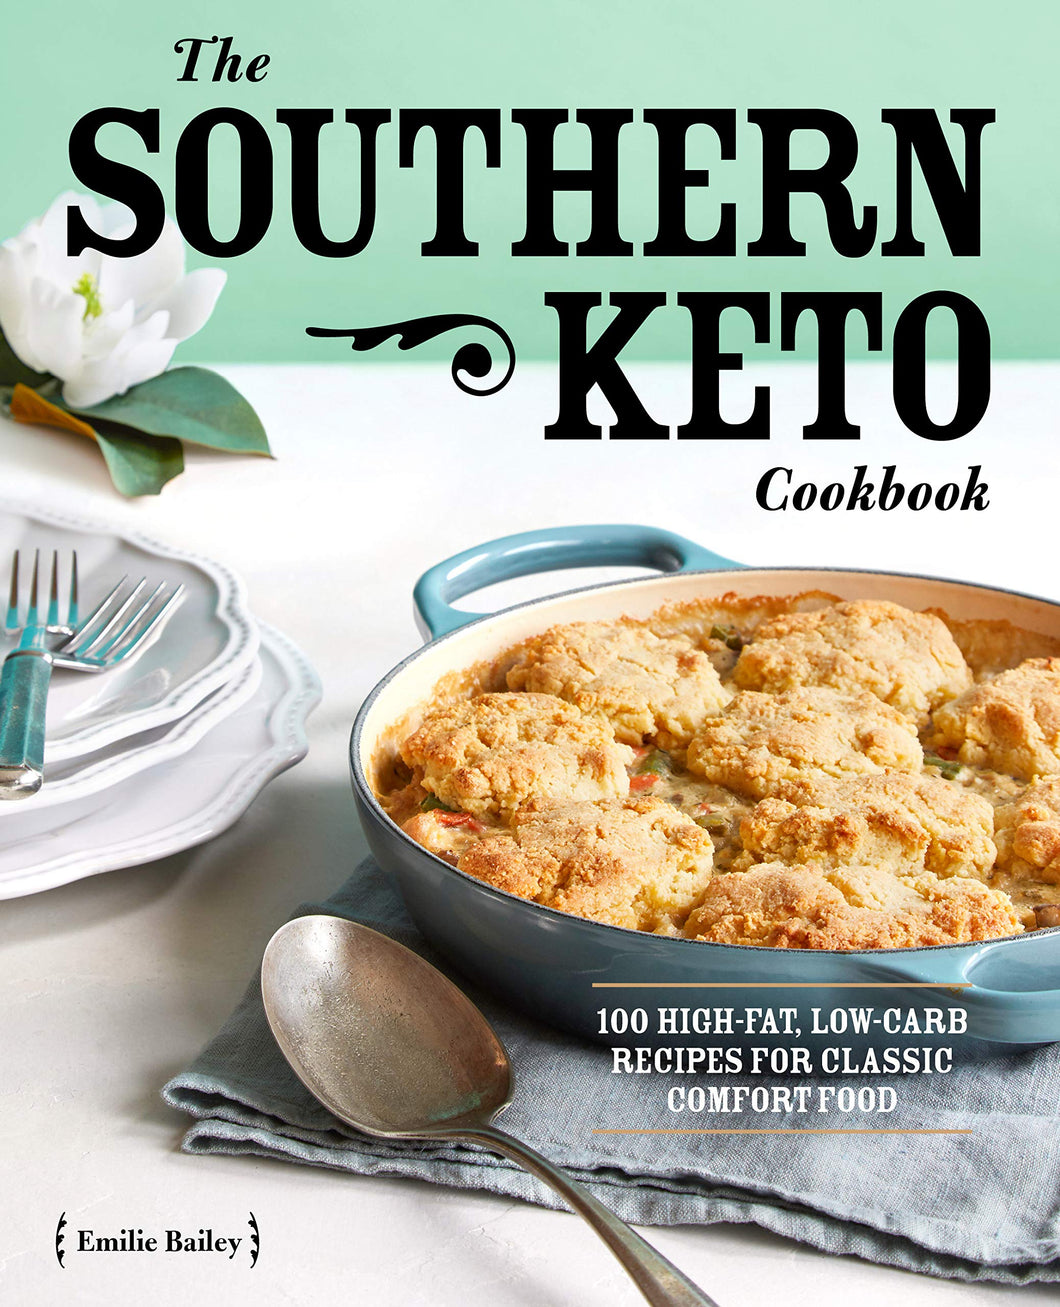 The Southern Keto Cookbook: 100 High-Fat, Low-Carb Recipes for Classic Comfort Food - Tolerant Planet